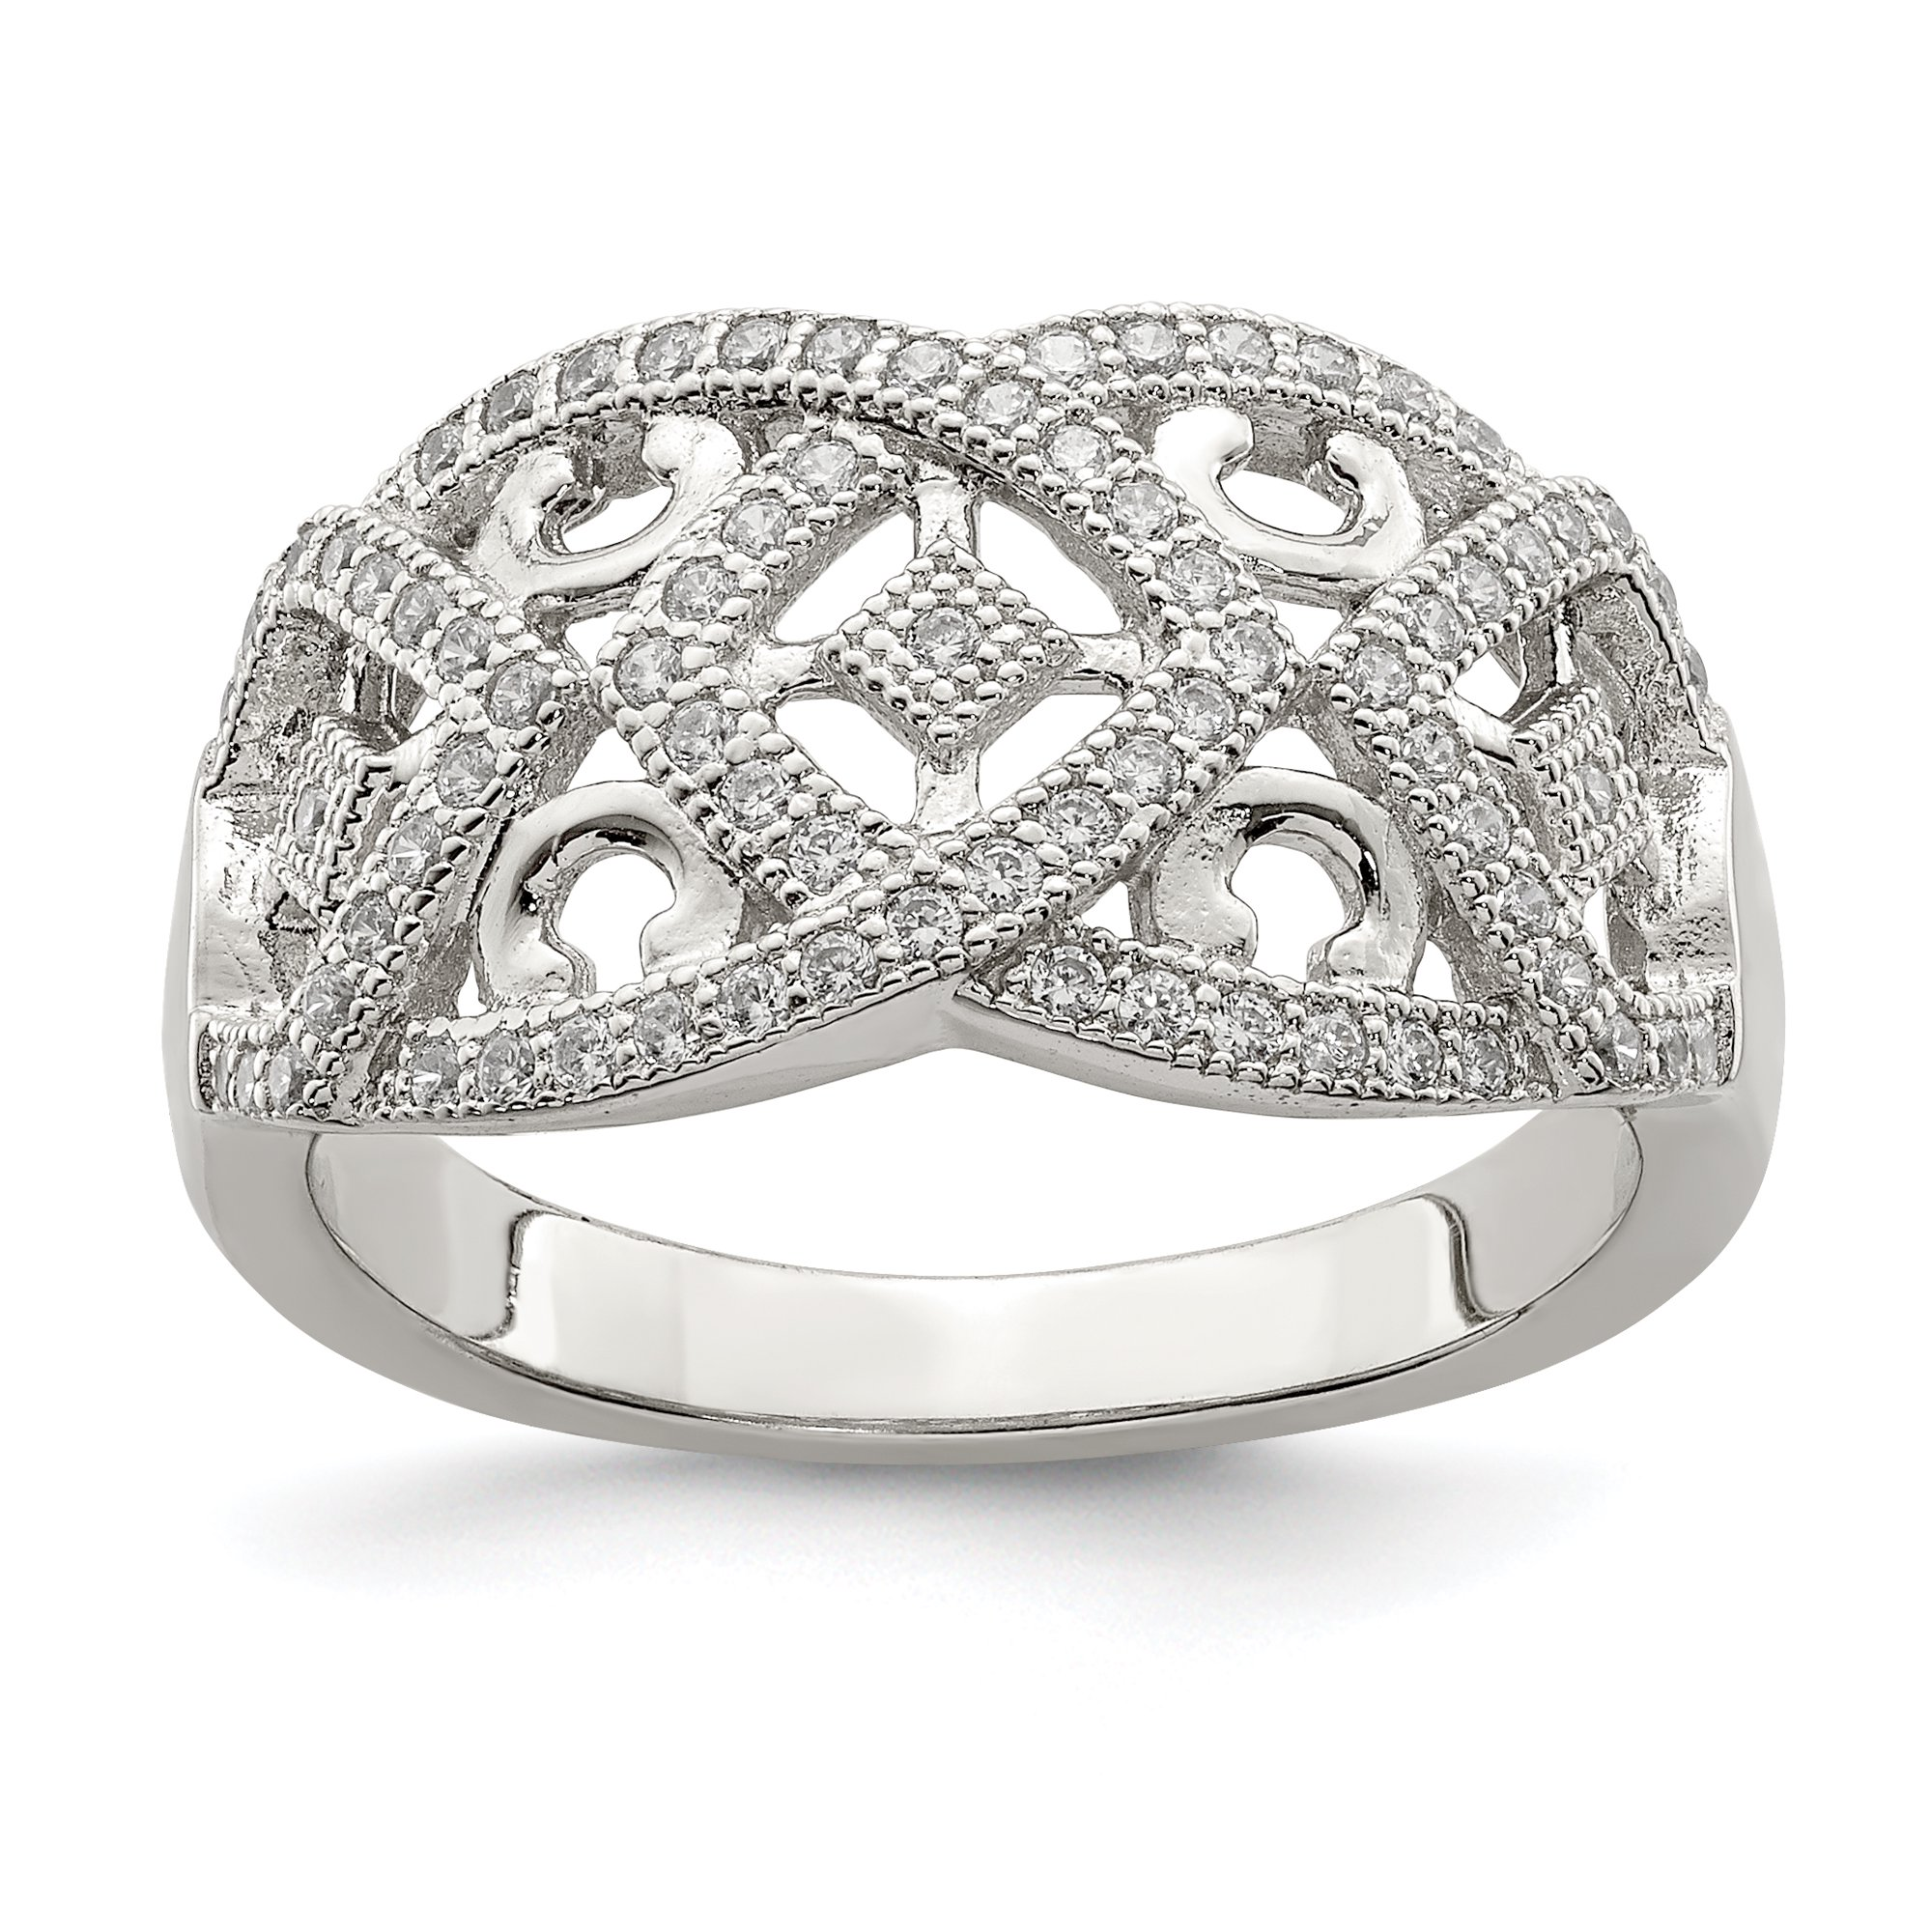 It is a photo of 50 Sterling Silver Micro Intricate Designs Band Ring Size 50.50 Fine Jewelry Gifts For Women For Her